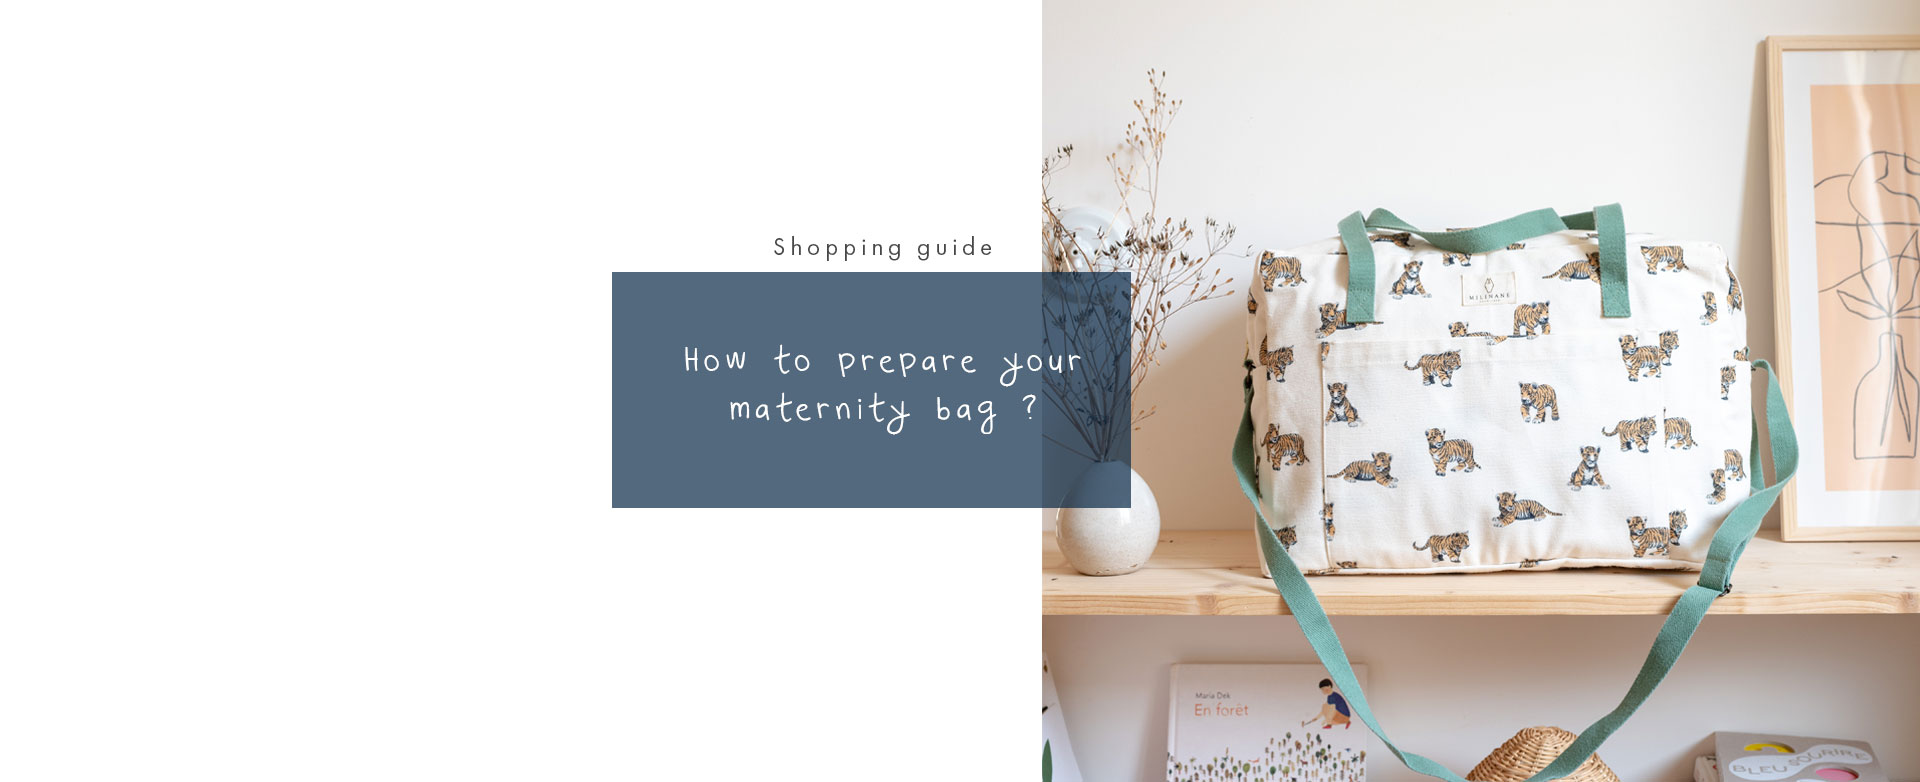 Pack your maternity bag